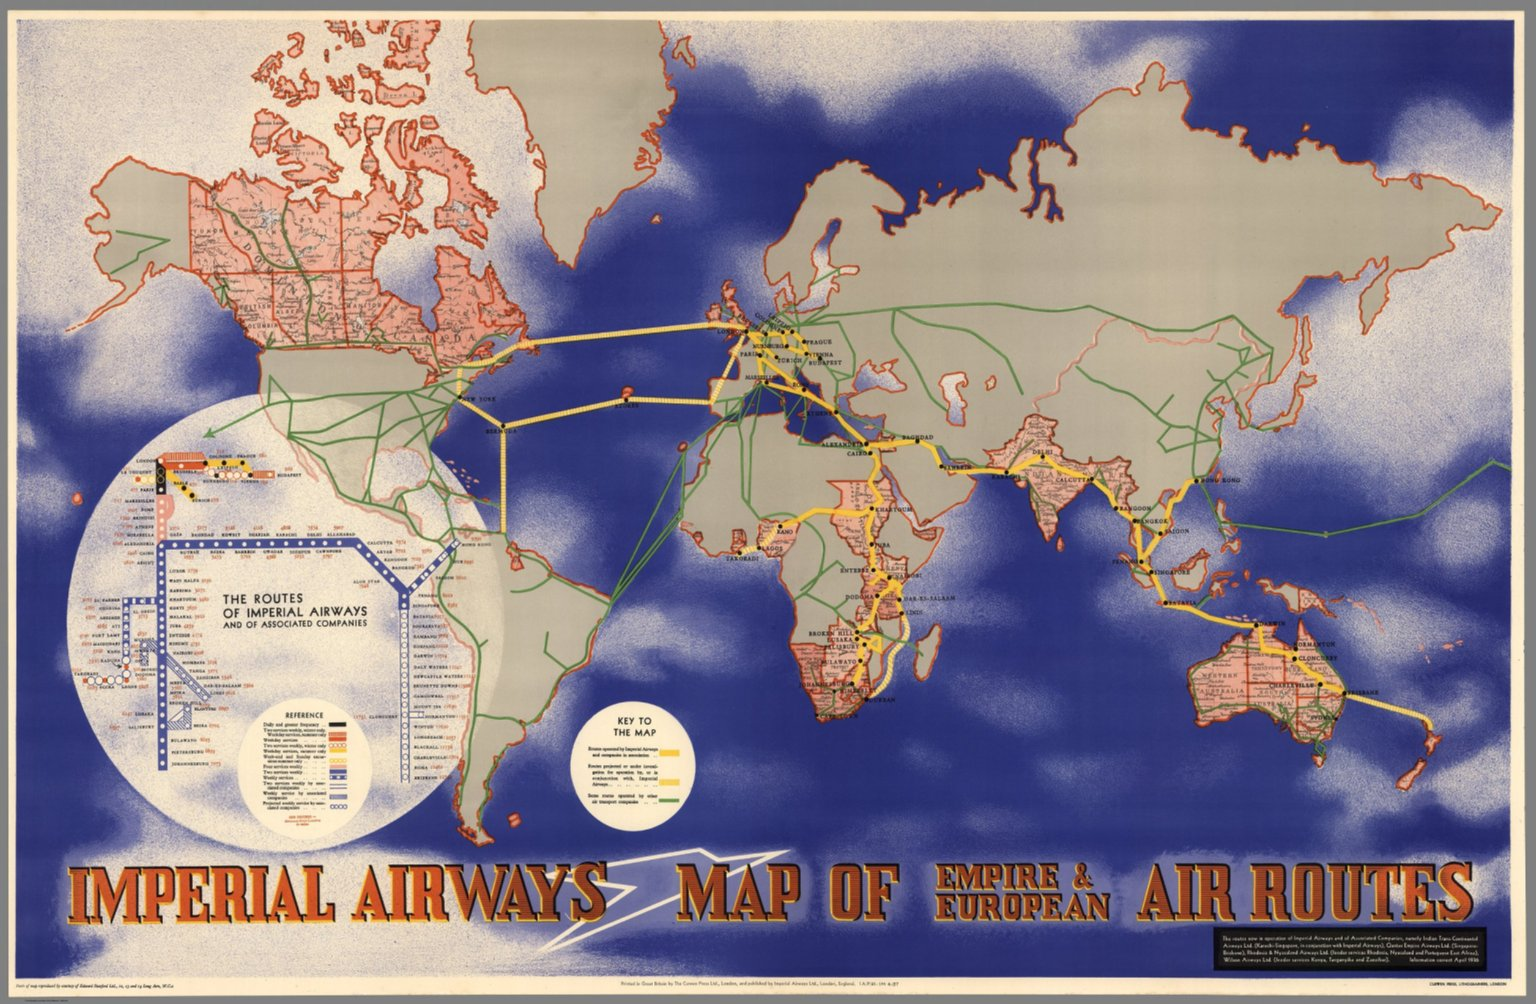 Imperial airways map of empire european air routes david imperial airways map of empire european air routes gumiabroncs Image collections